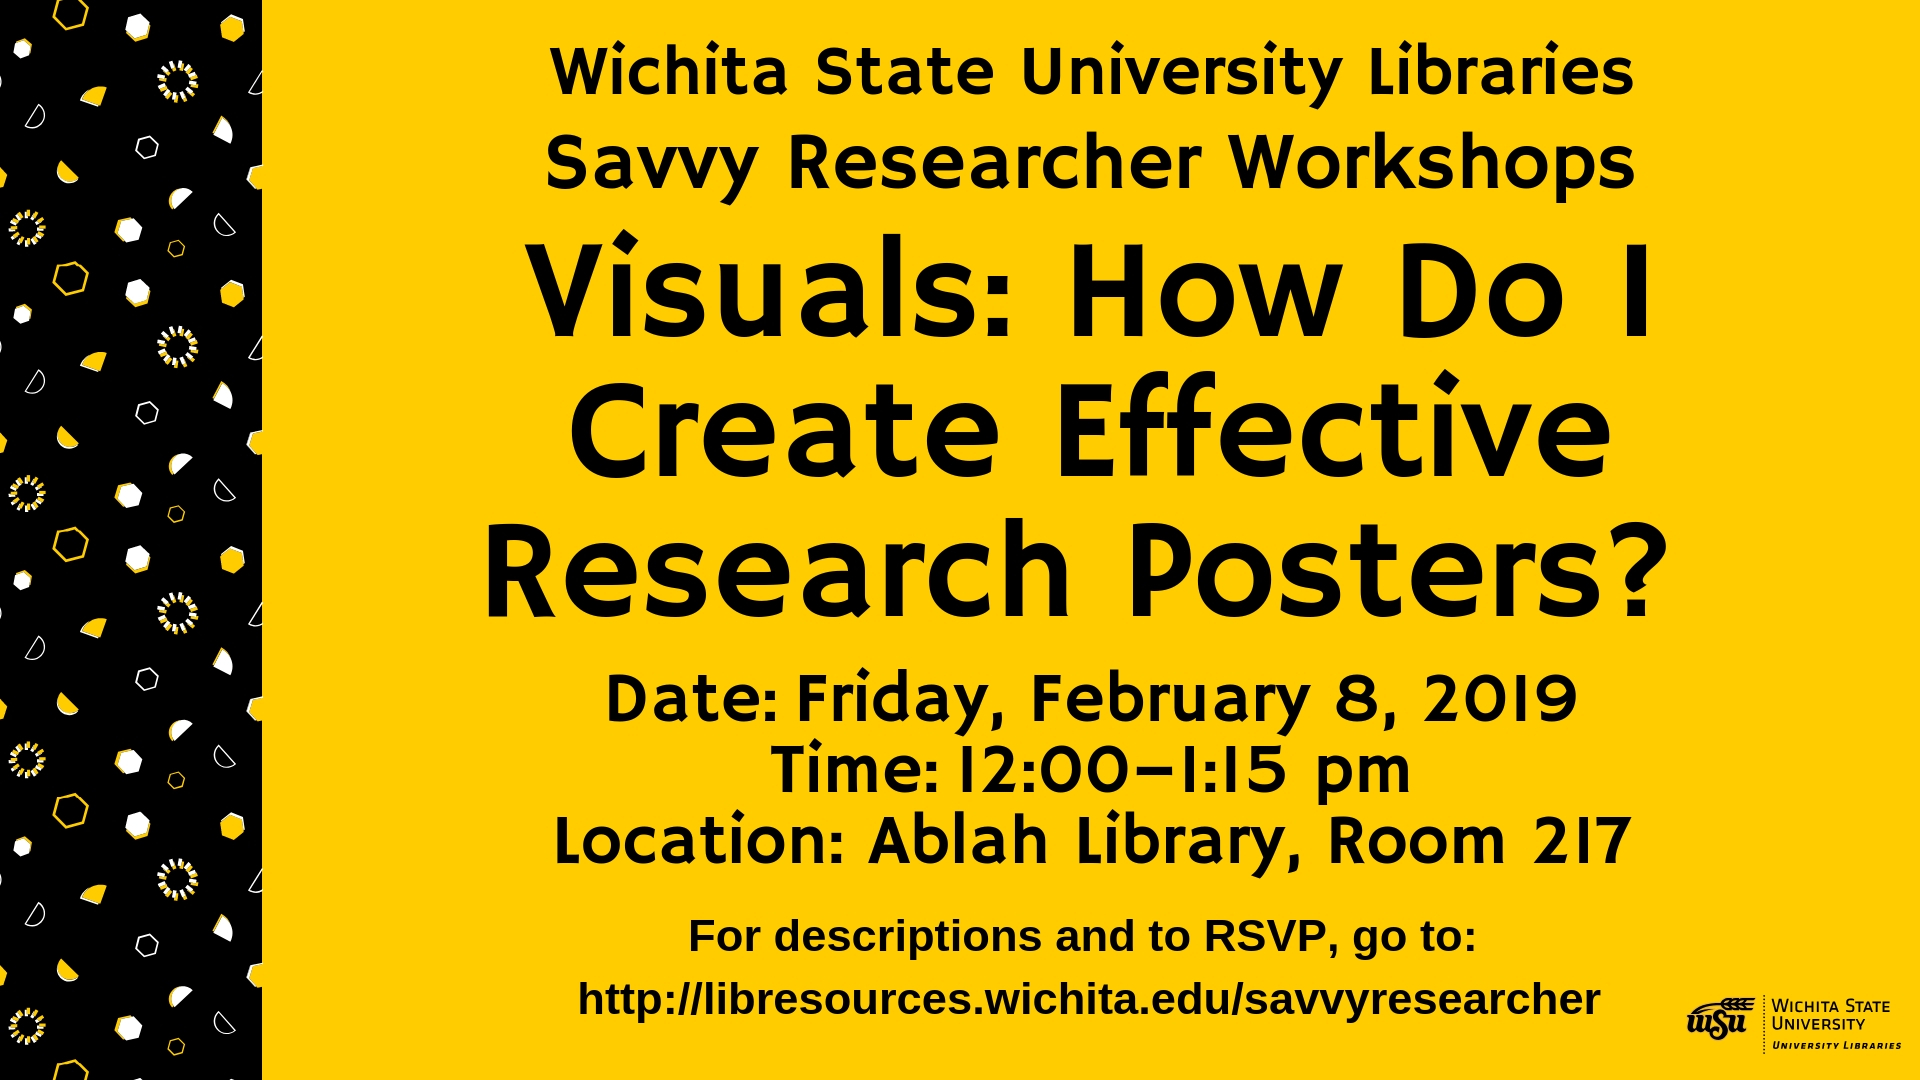 Visuals: How Do I Create Effective Research Posters?